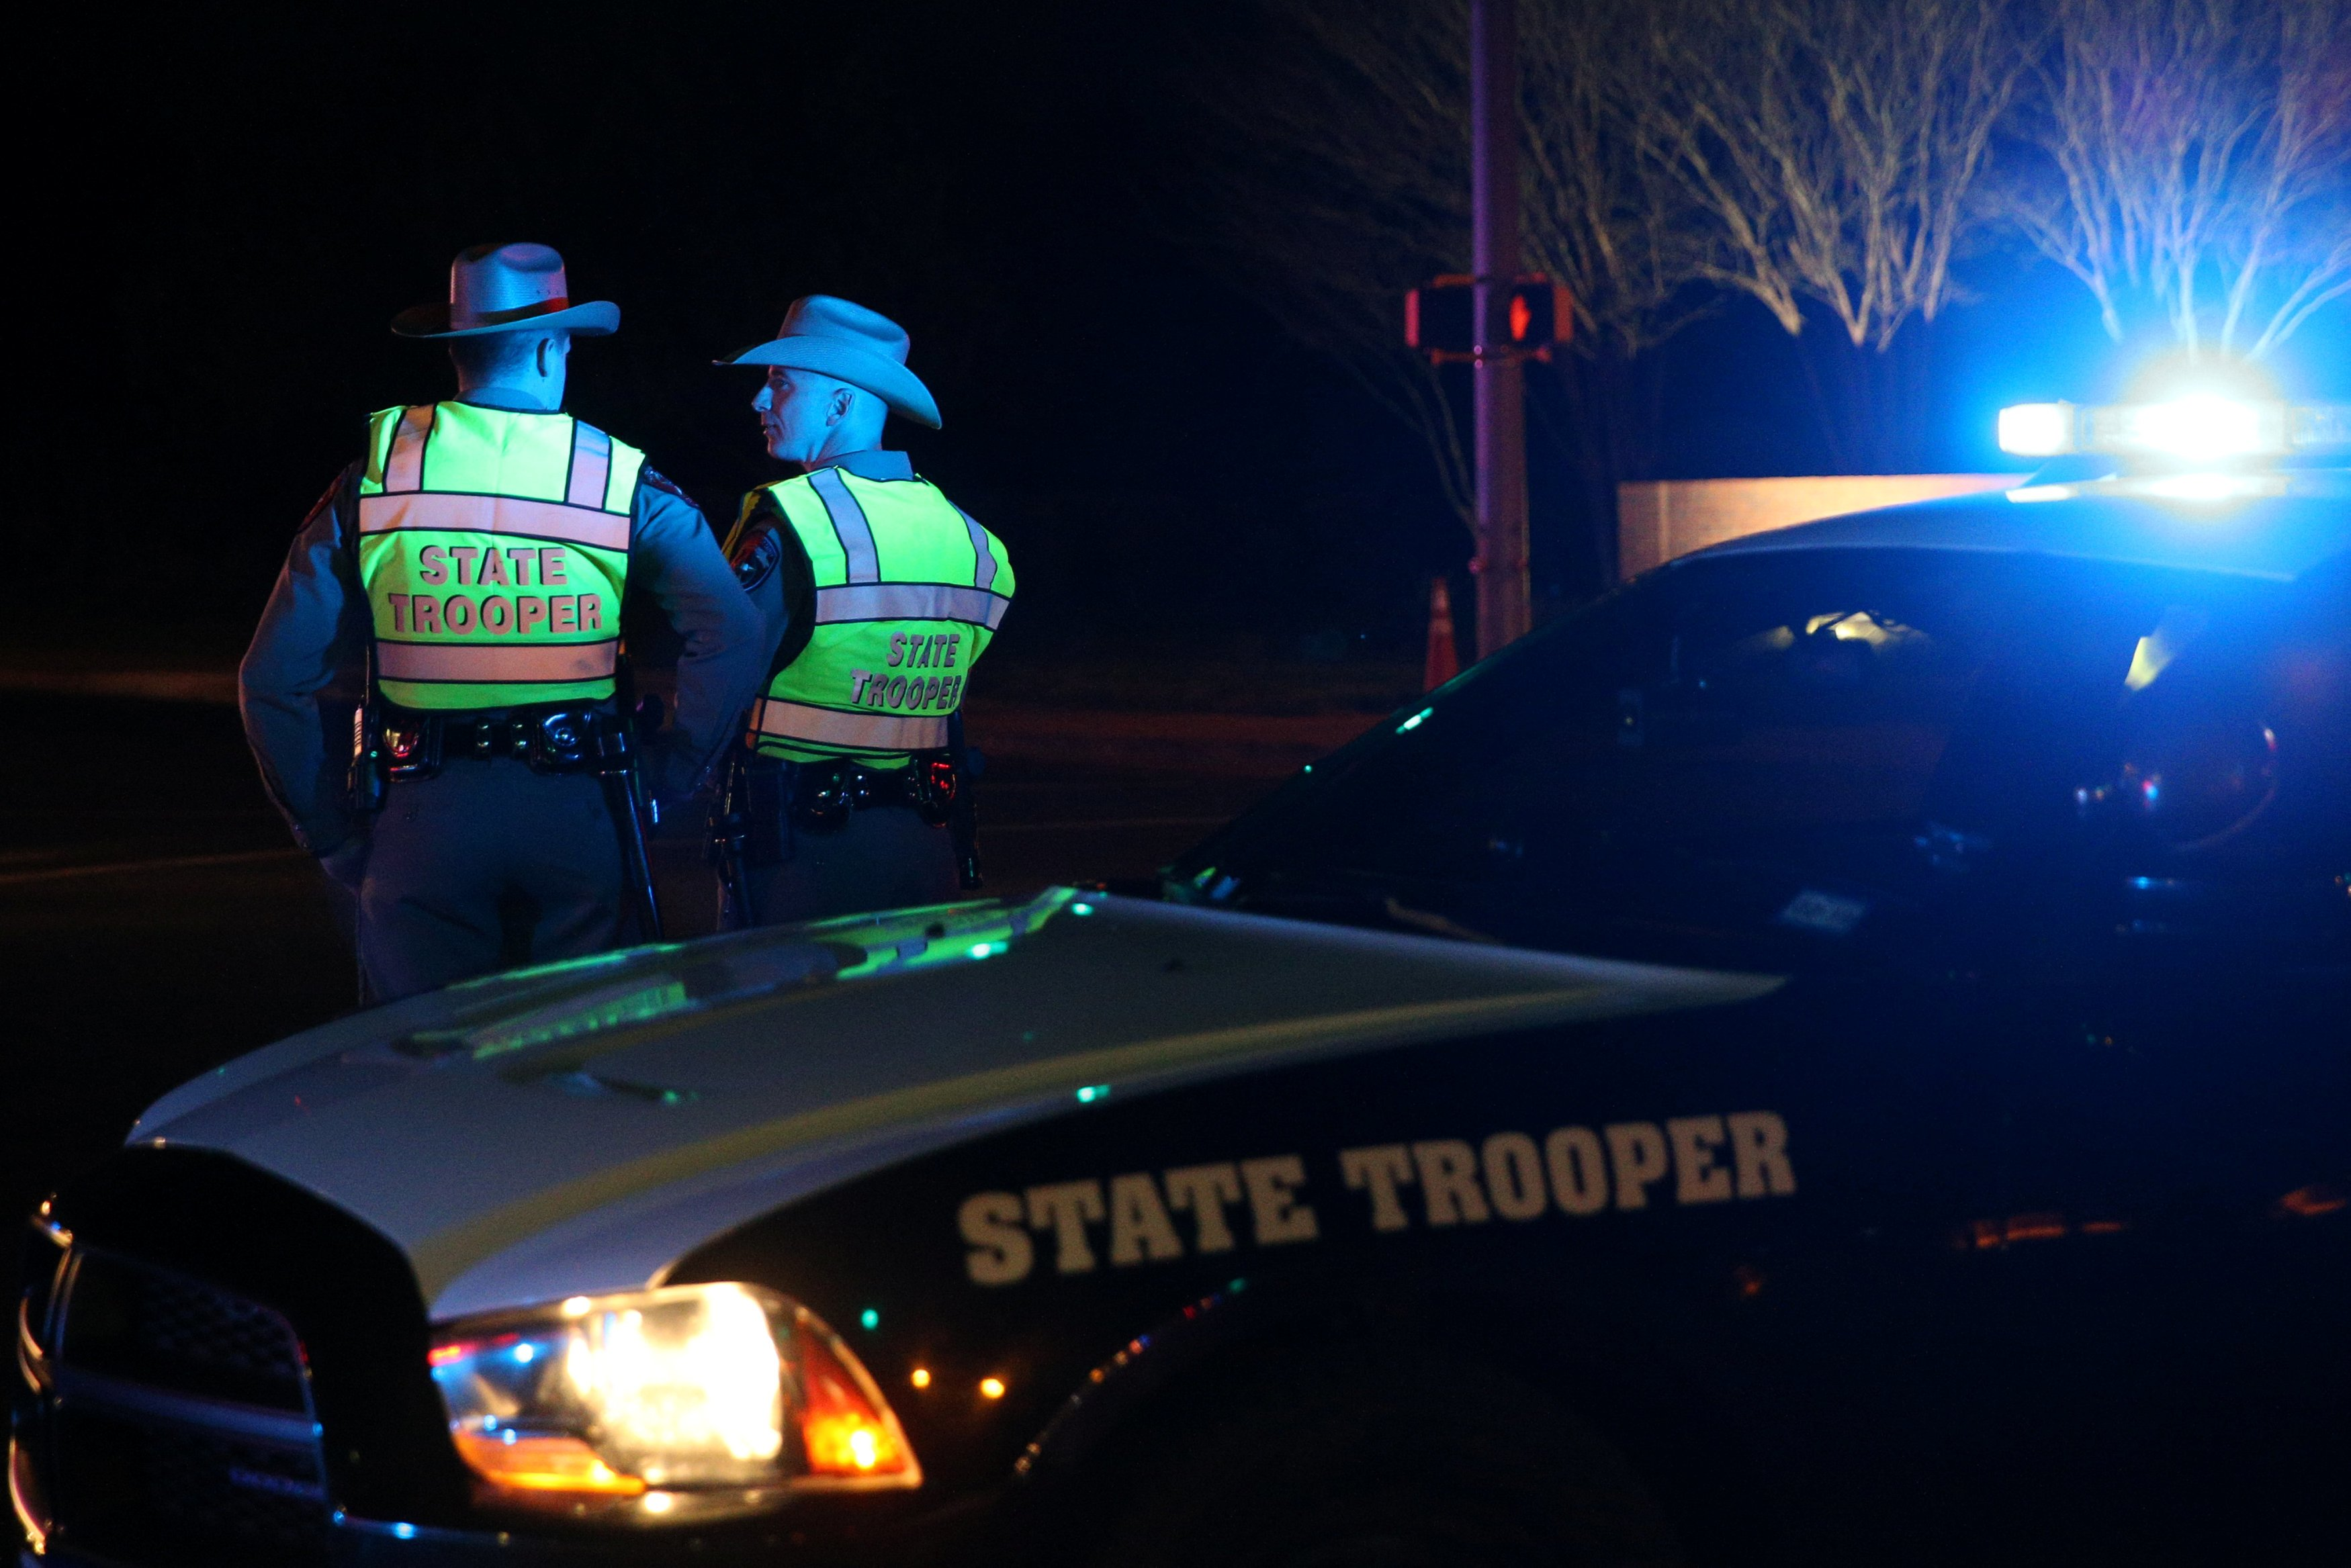 Texas state troopers keep watch at a checkpoint as nearby law enforcement personnel investigate an incident in Austin